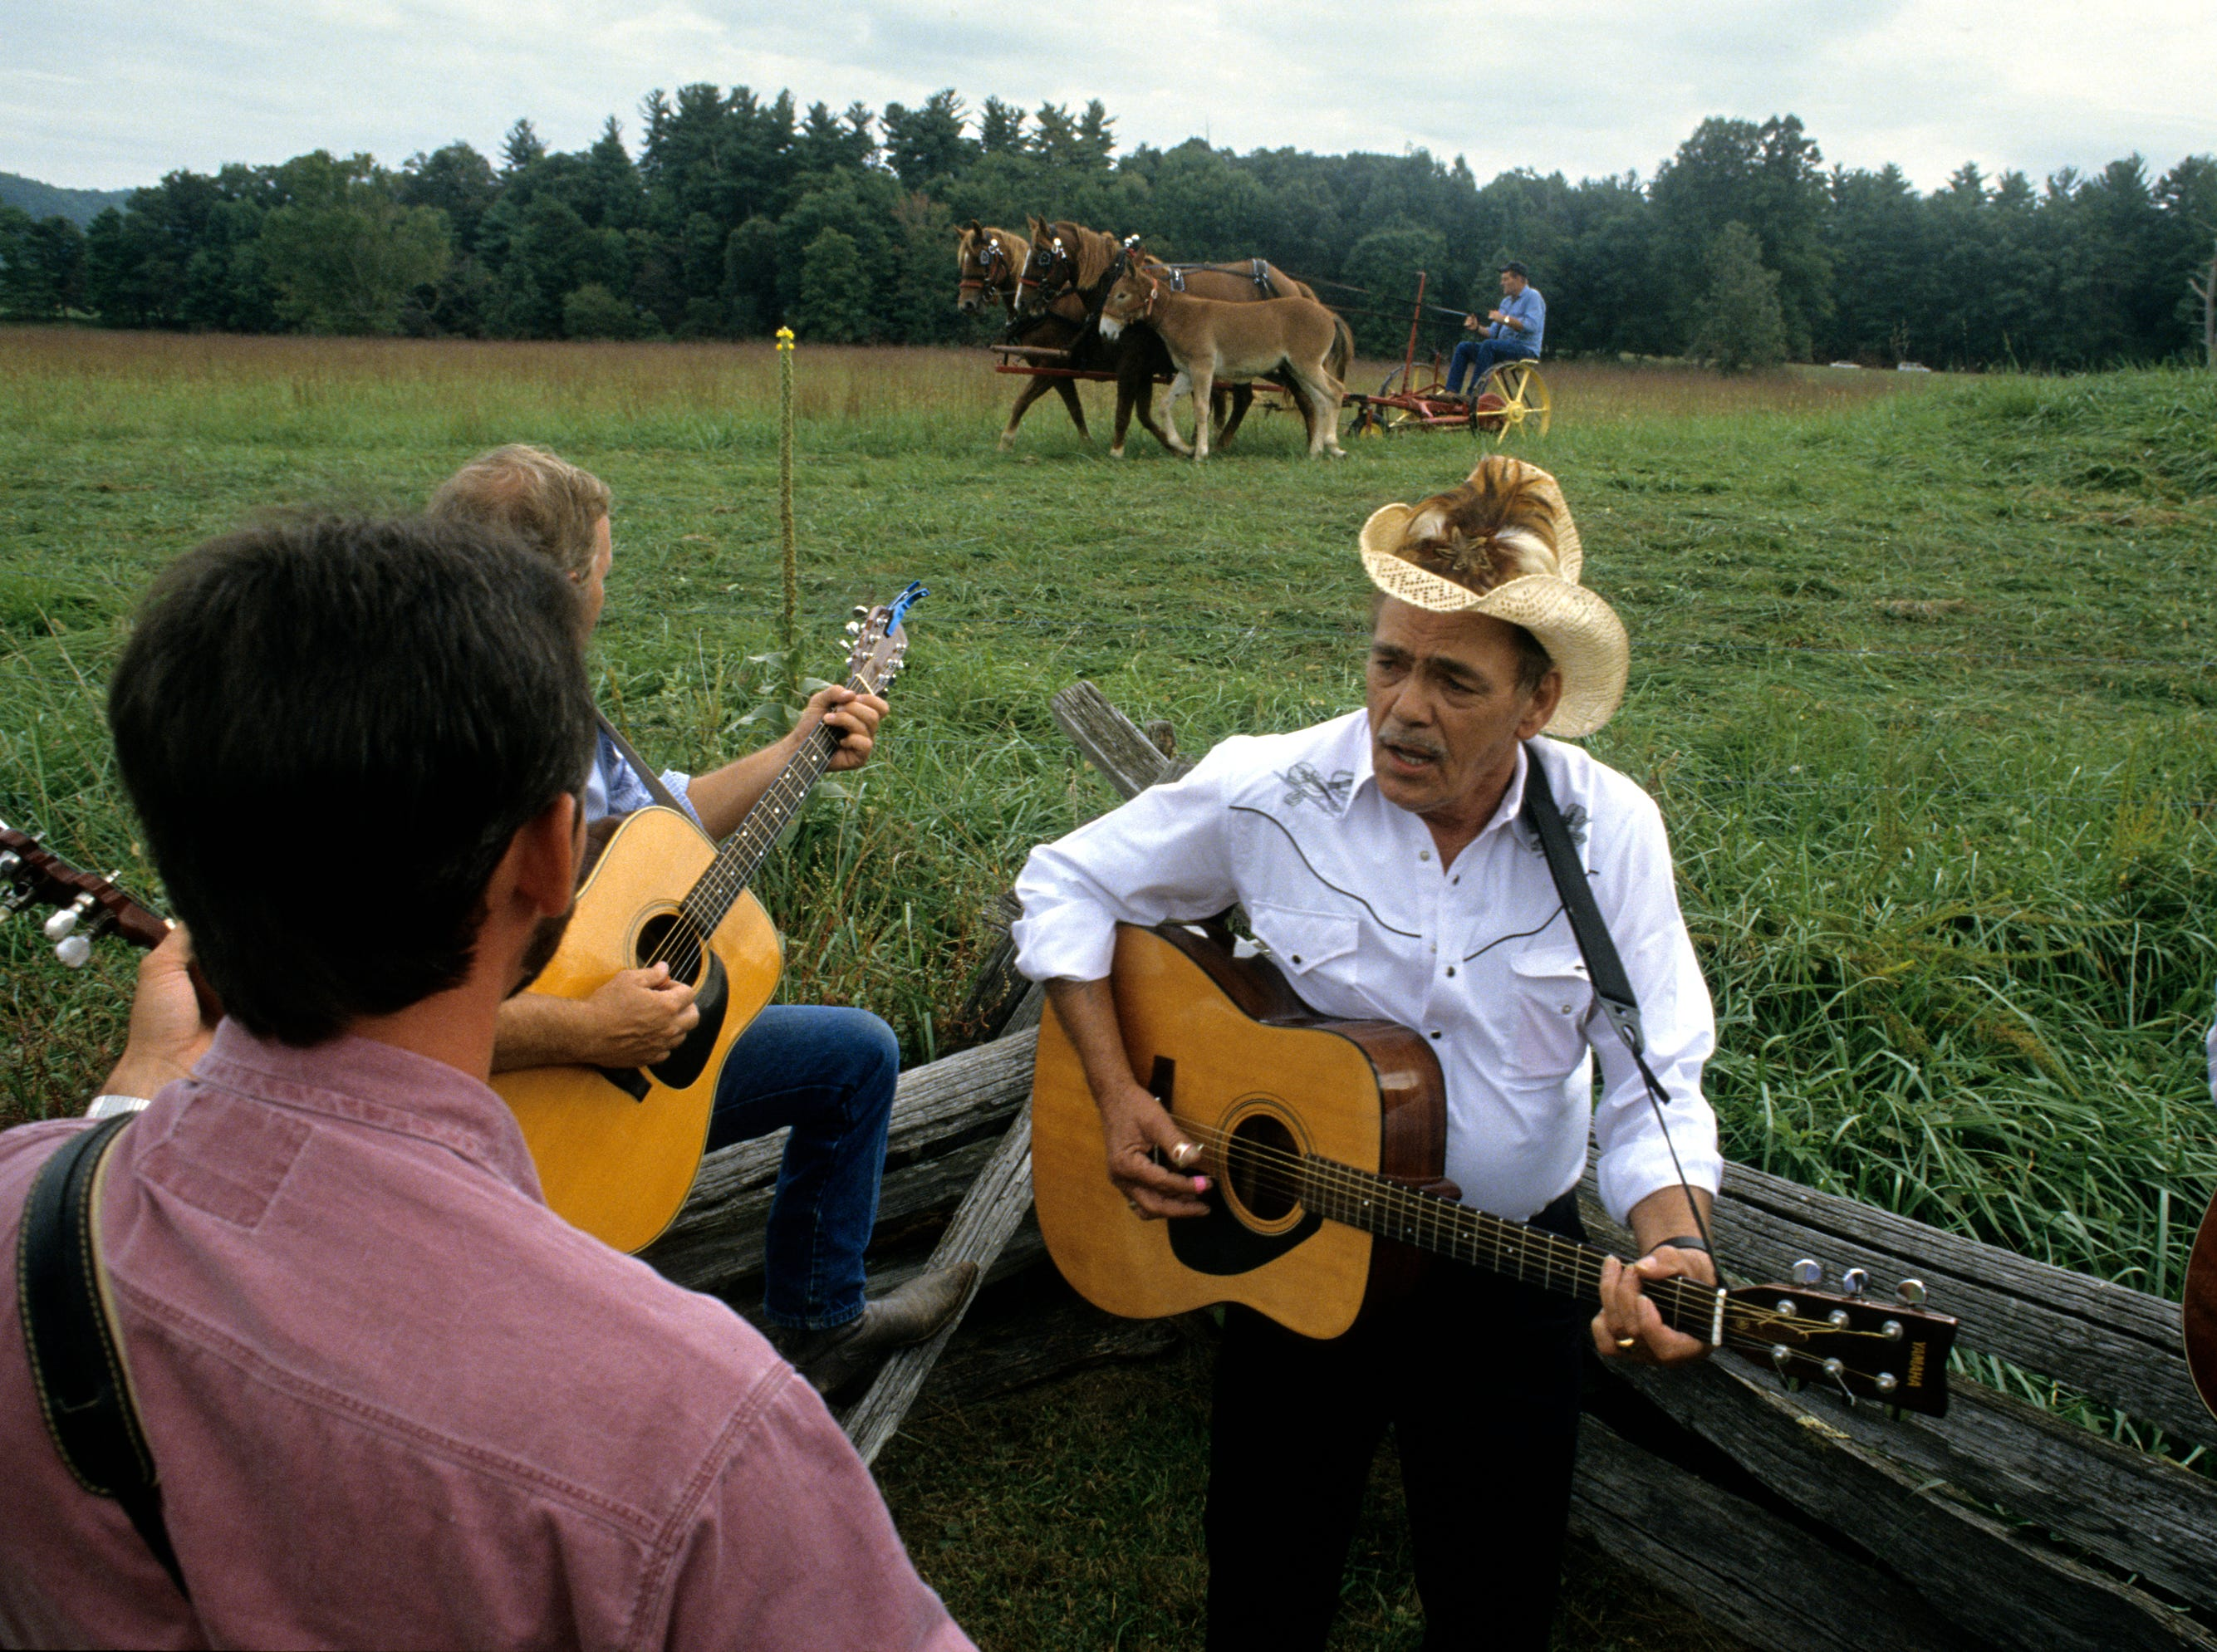 """Junior Gibson takes the lead singing """"Why I Love Jesus"""" during Old Timers Day in Cades Cove on Sept. 29, 1992 in the Great Smoky Mountains National Park. """"That's what I cut my teeth on,"""" said Gibson about the gospel tune."""